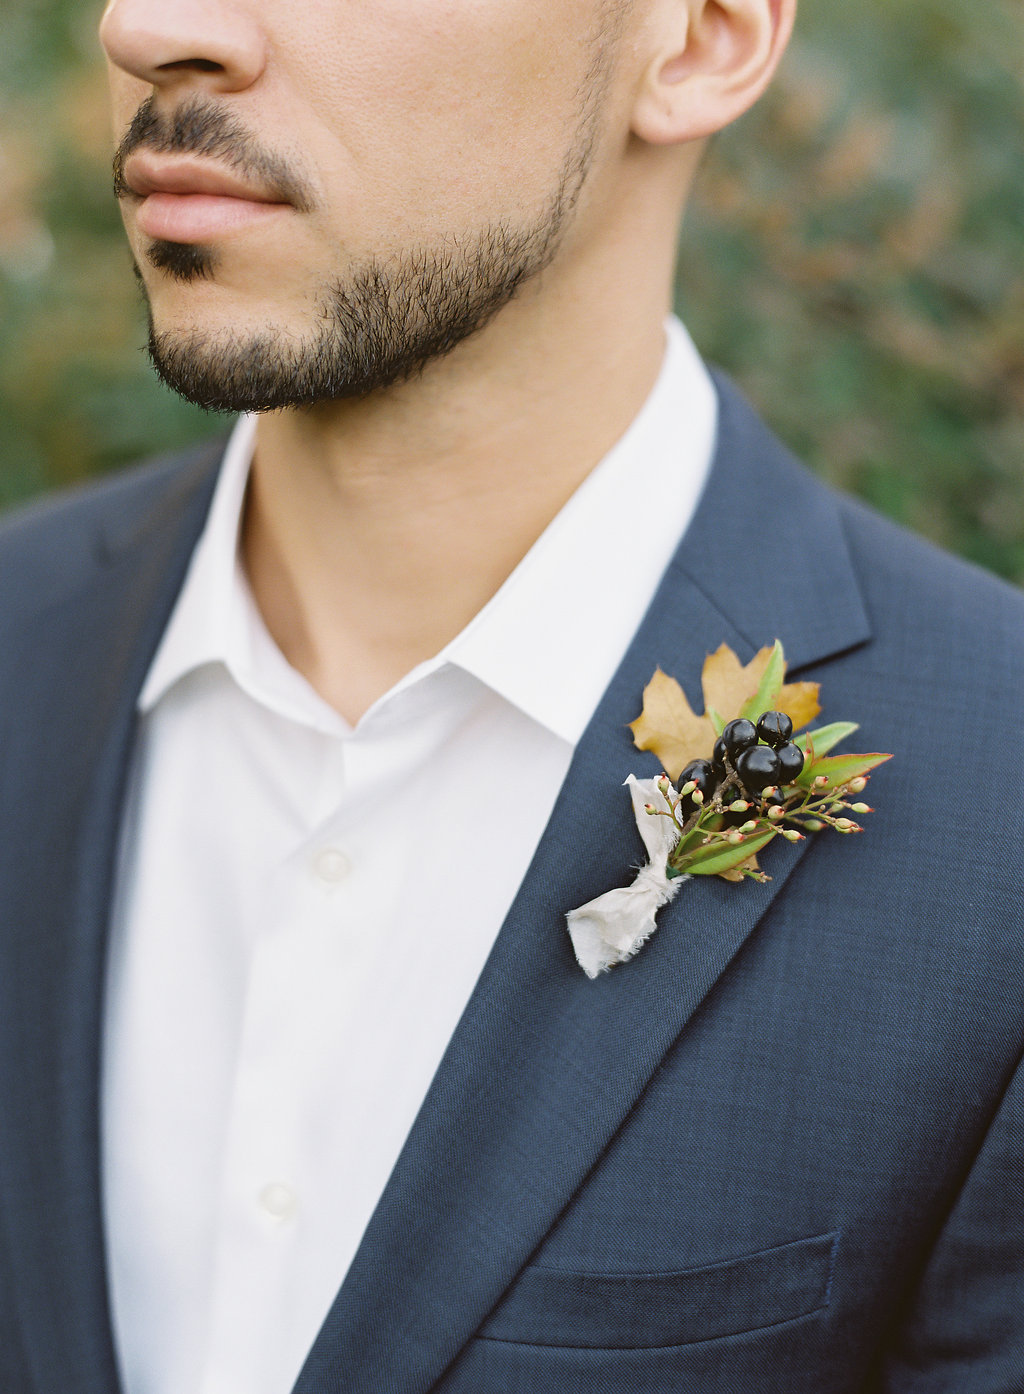 French Inspired Fall Wedding with Fine Art Destination Wedding Planner East Made Event Company and DC Film Photographer Vicki Grafton Photography at Tudor Place in Washington DC-127.jpg